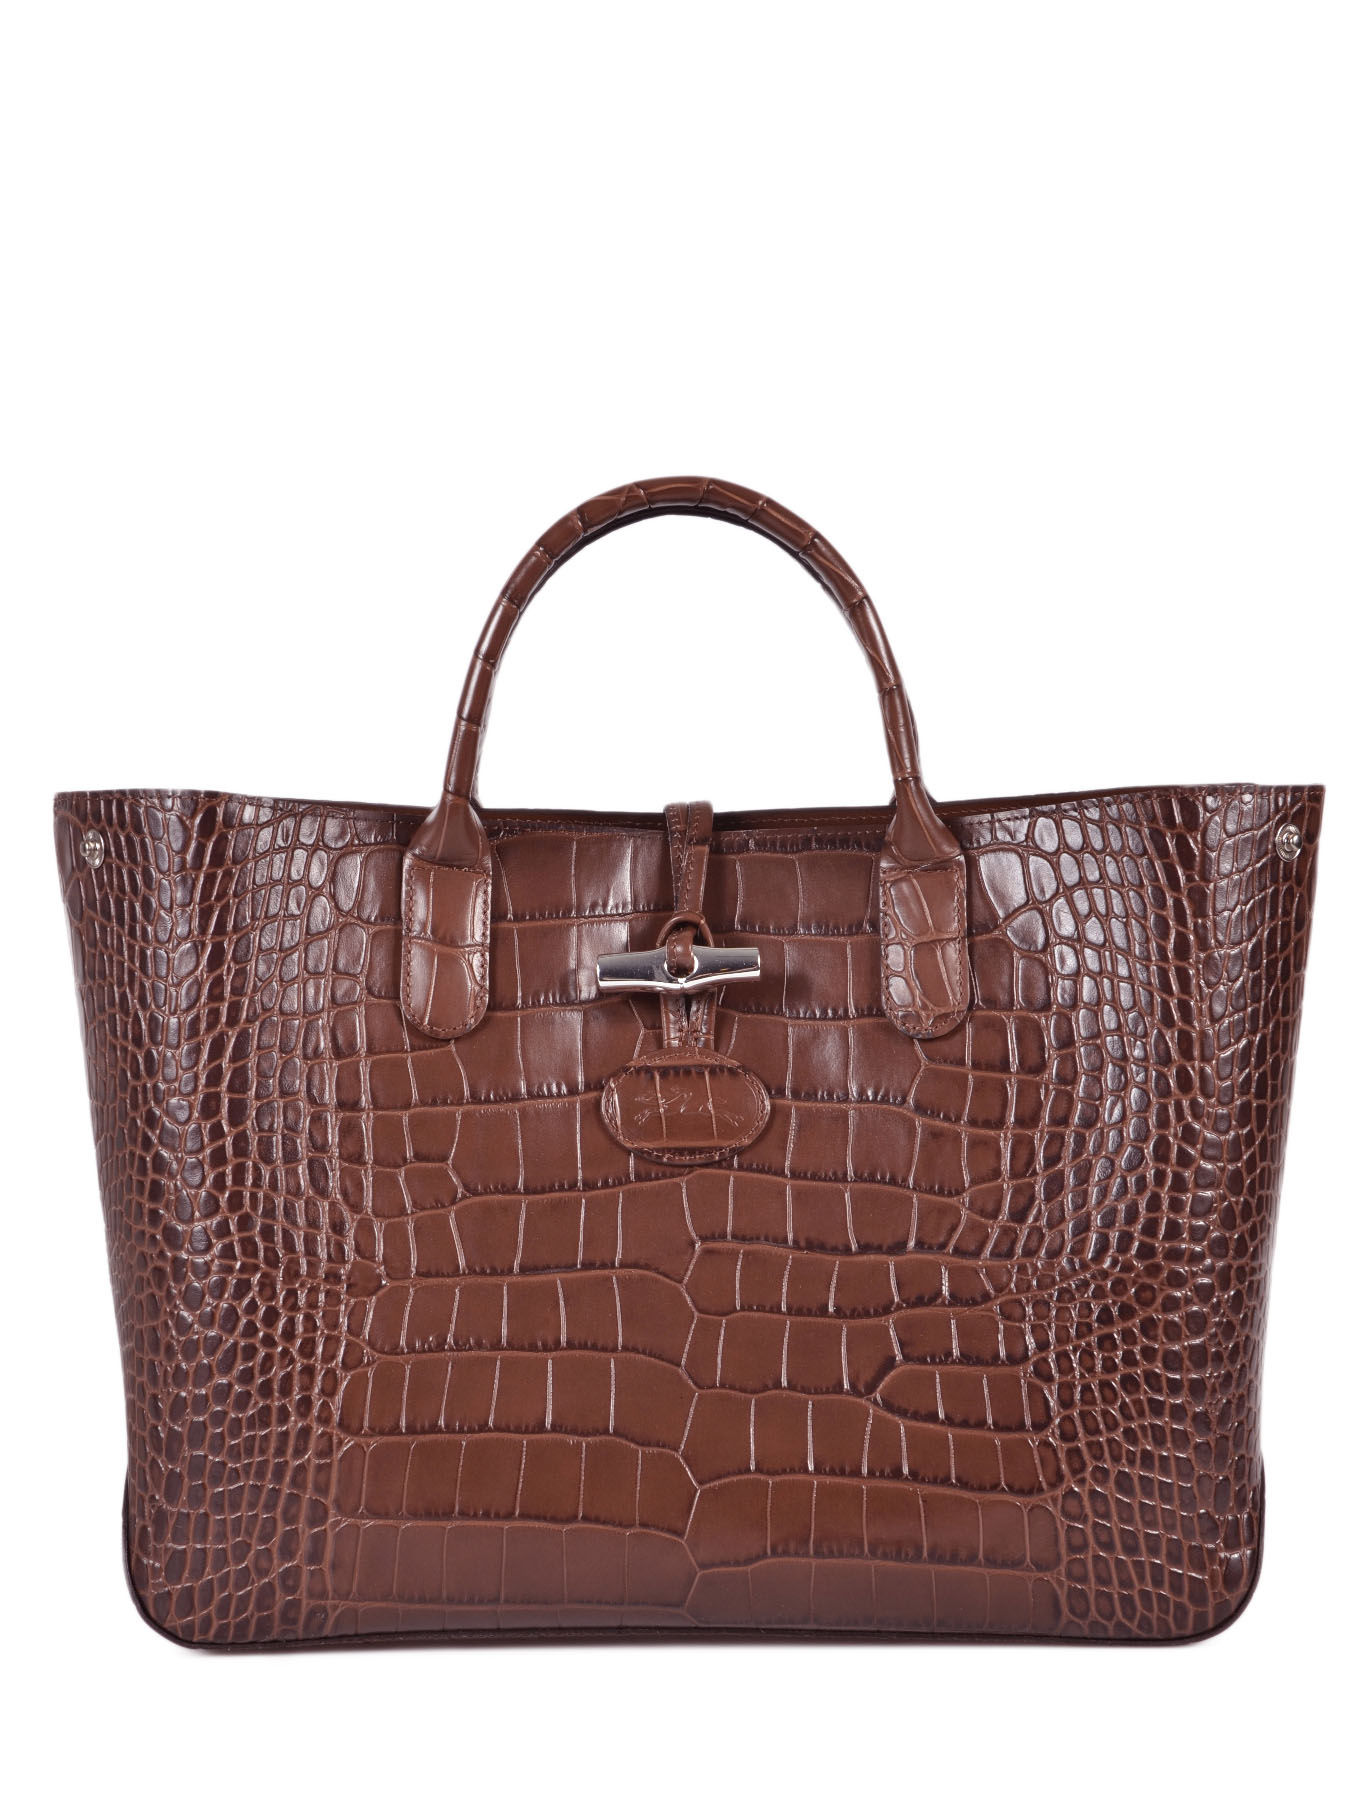 longchamp handbag roseau croco best prices. Black Bedroom Furniture Sets. Home Design Ideas